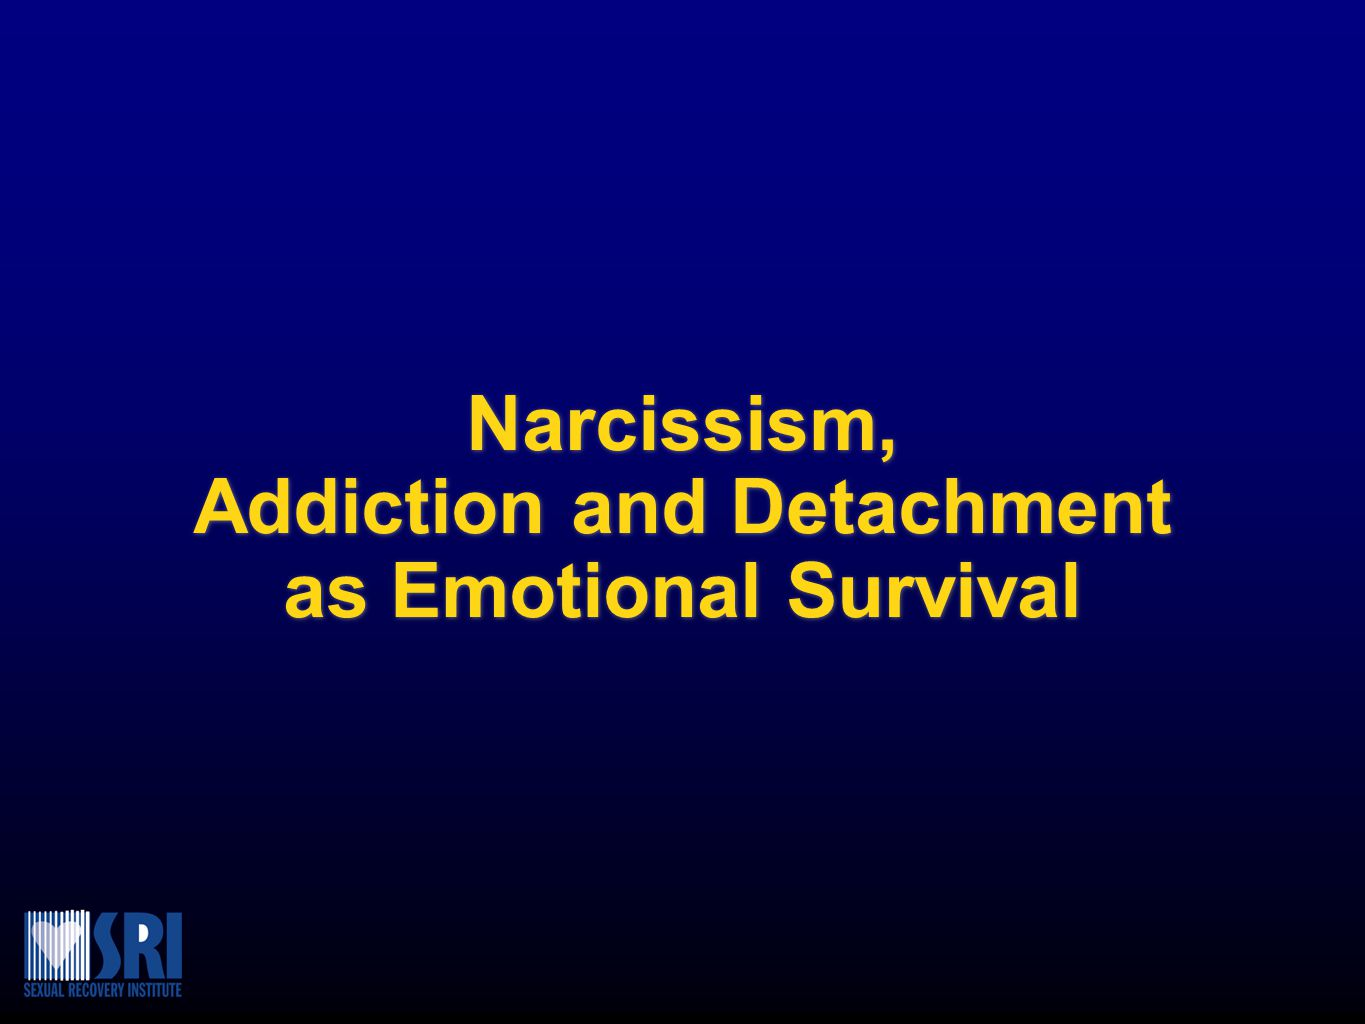 Narcissism, Addiction and Detachment as Emotional Survival Narcissism, Addiction and Detachment as Emotional Survival